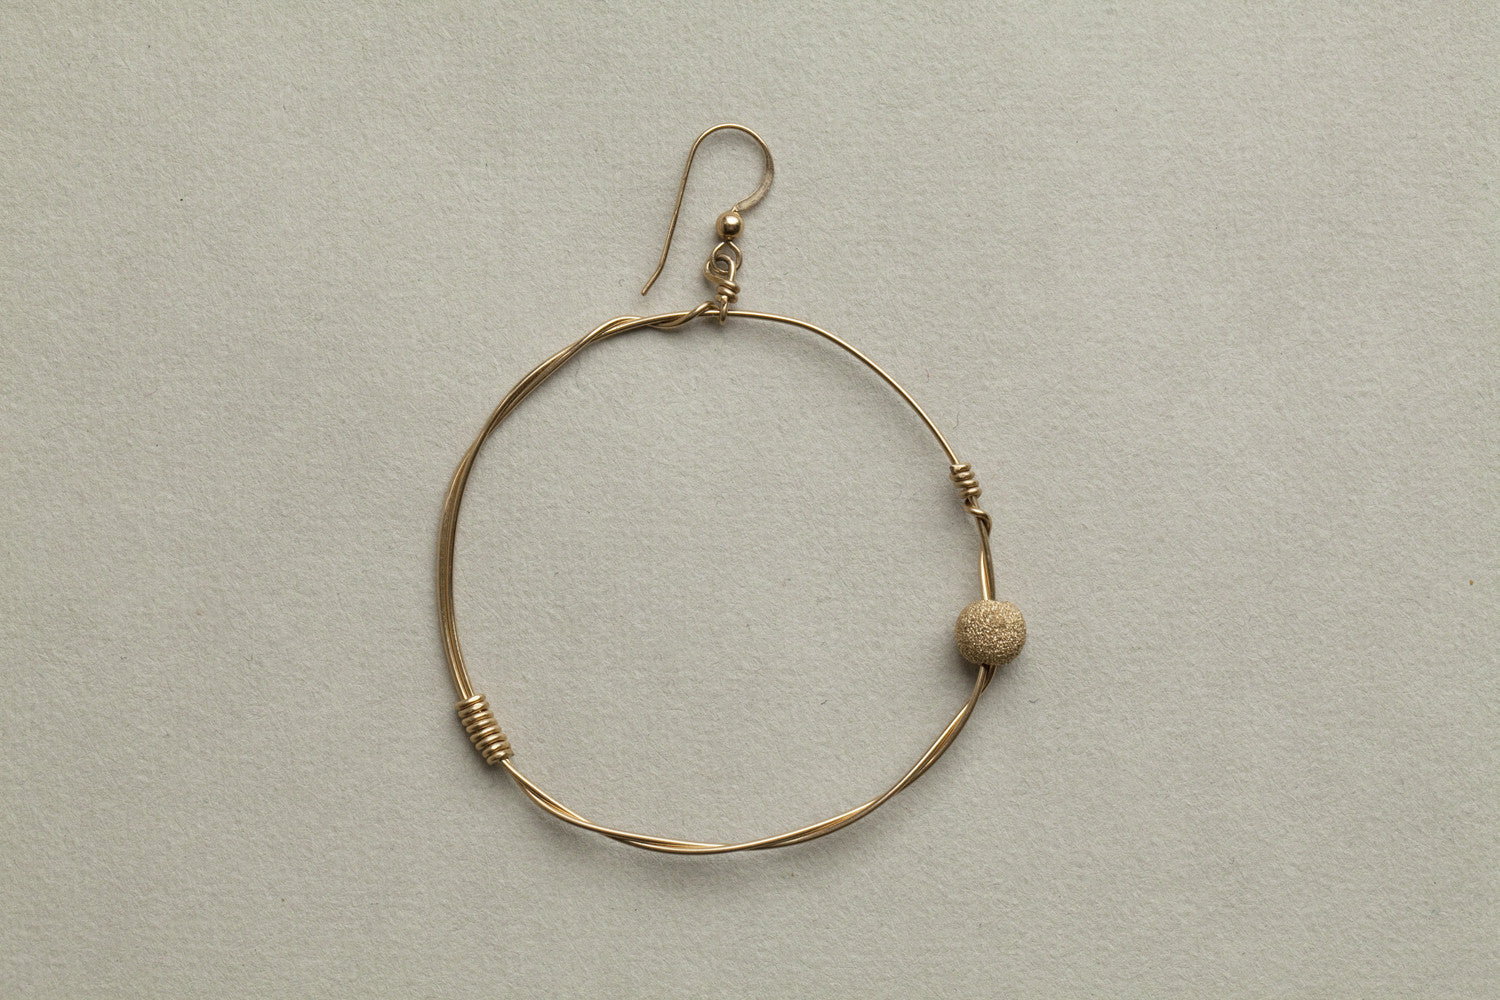 medium wire hoop from Mamacita